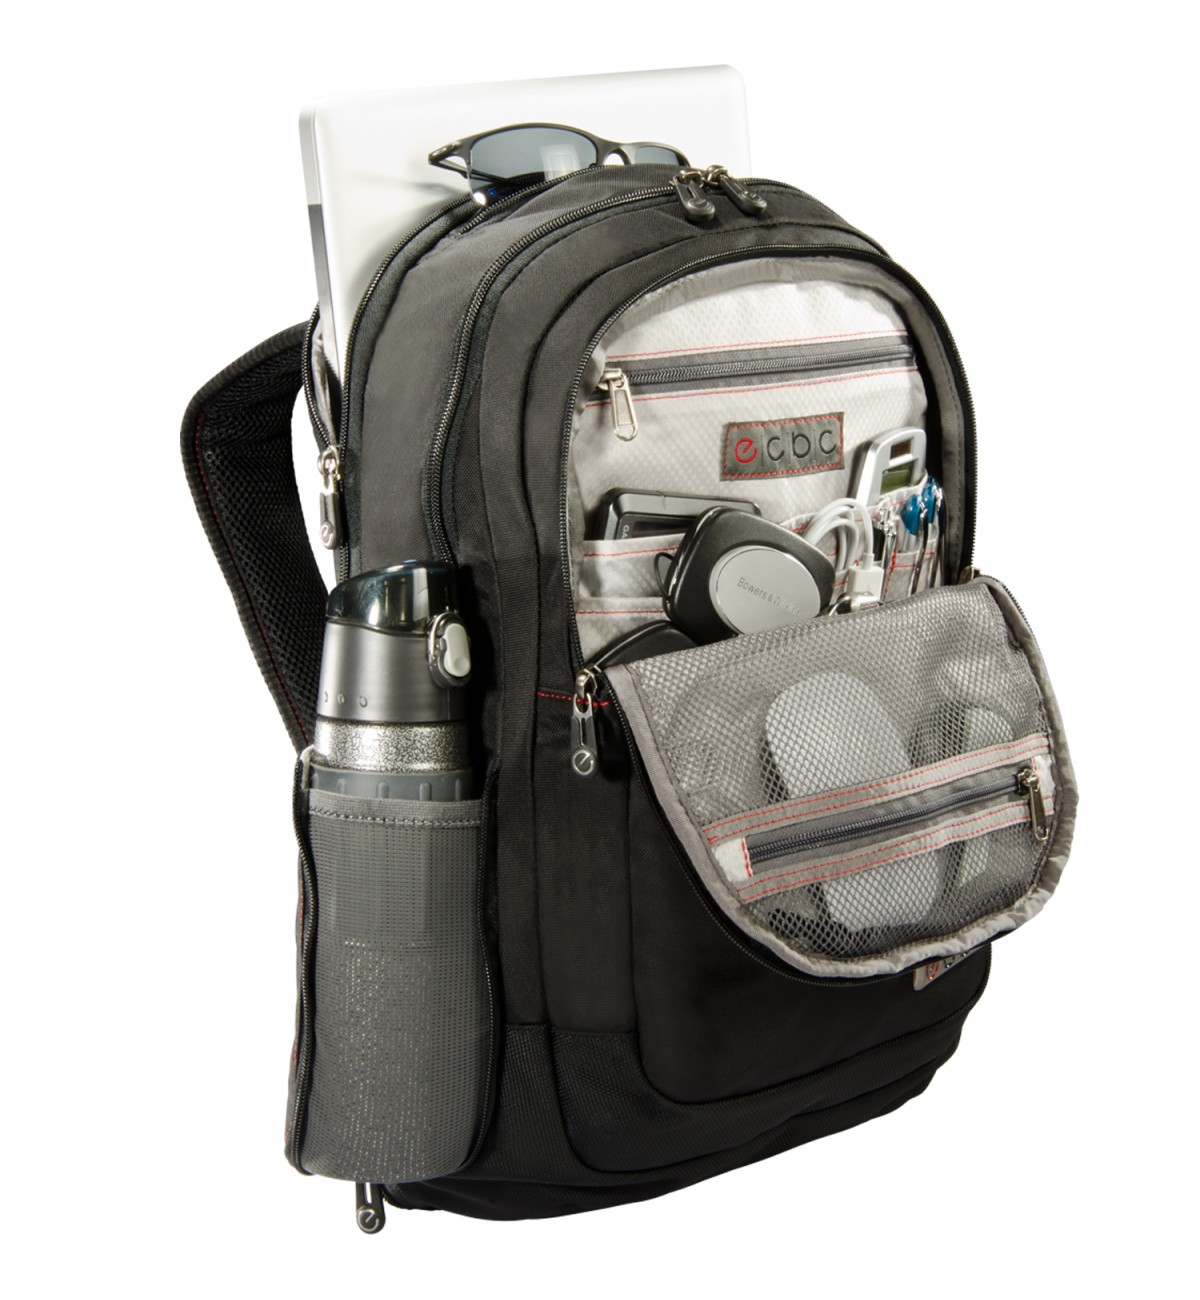 de0fb5179713 GearDiary ECBC s Lance Daypack Review  The Best Backpack I ve Ever Used